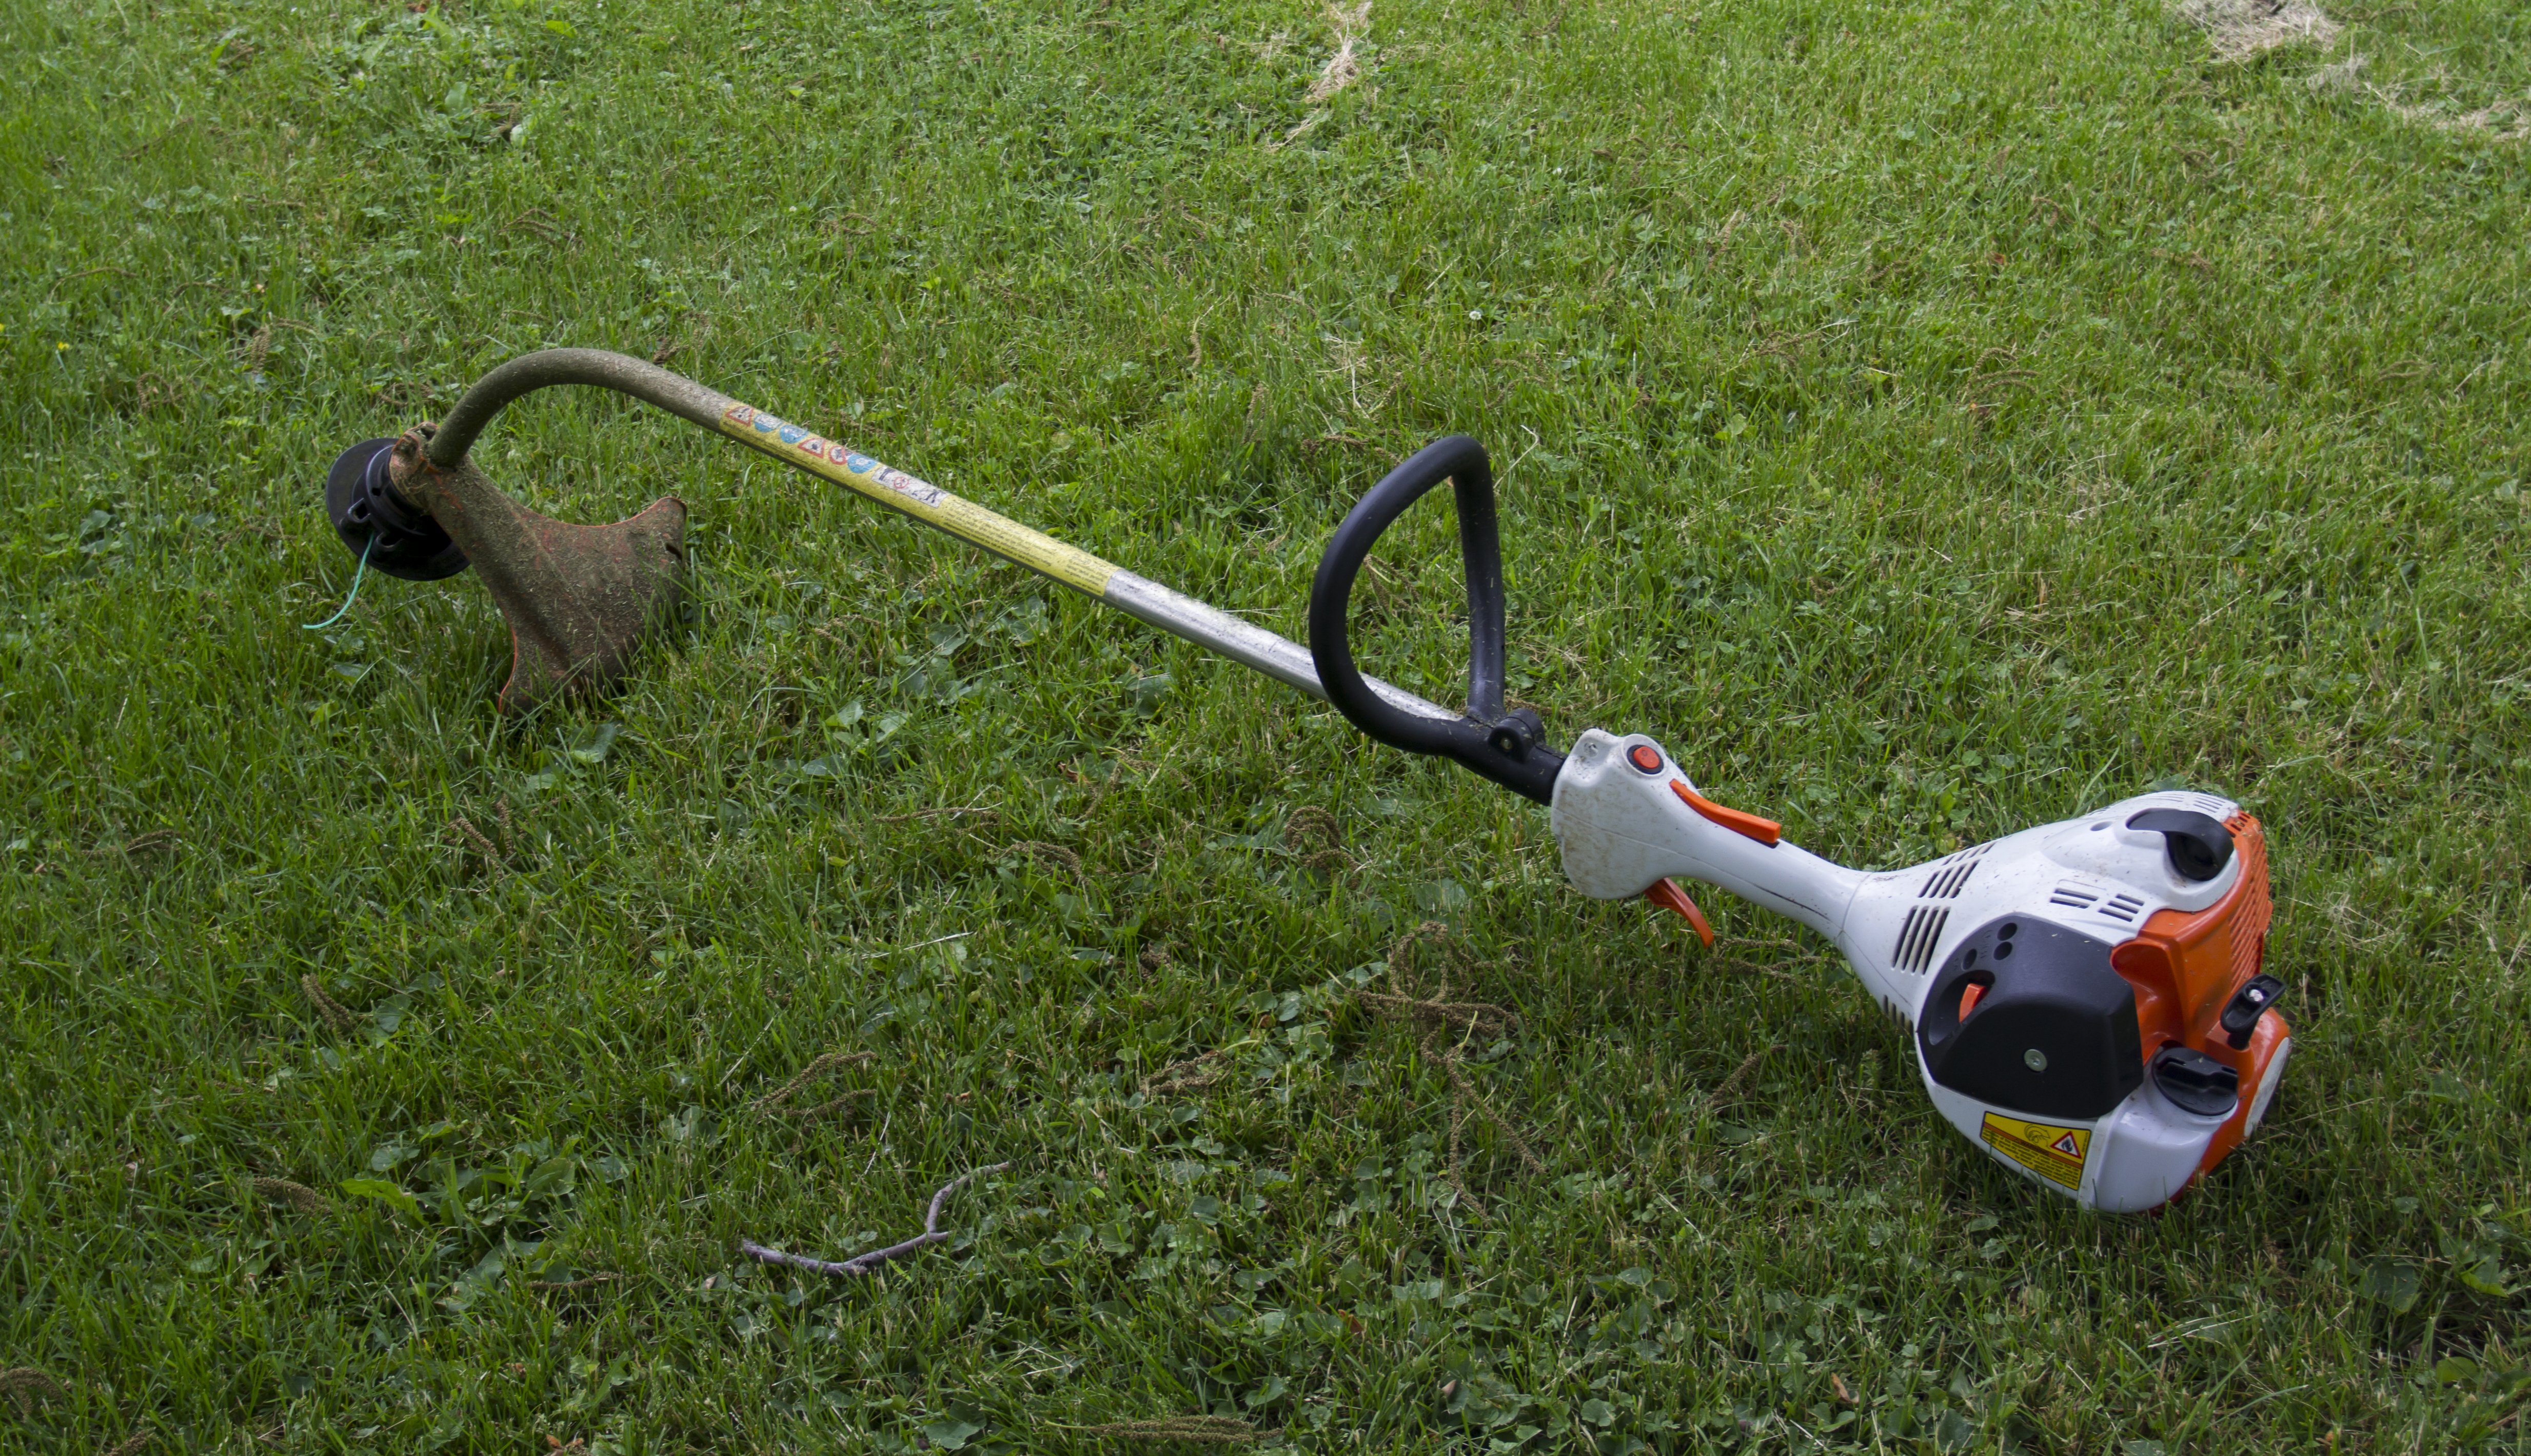 My Weed Eater Trimmer Head Doesn't Turn | Home Guides | SF Gate